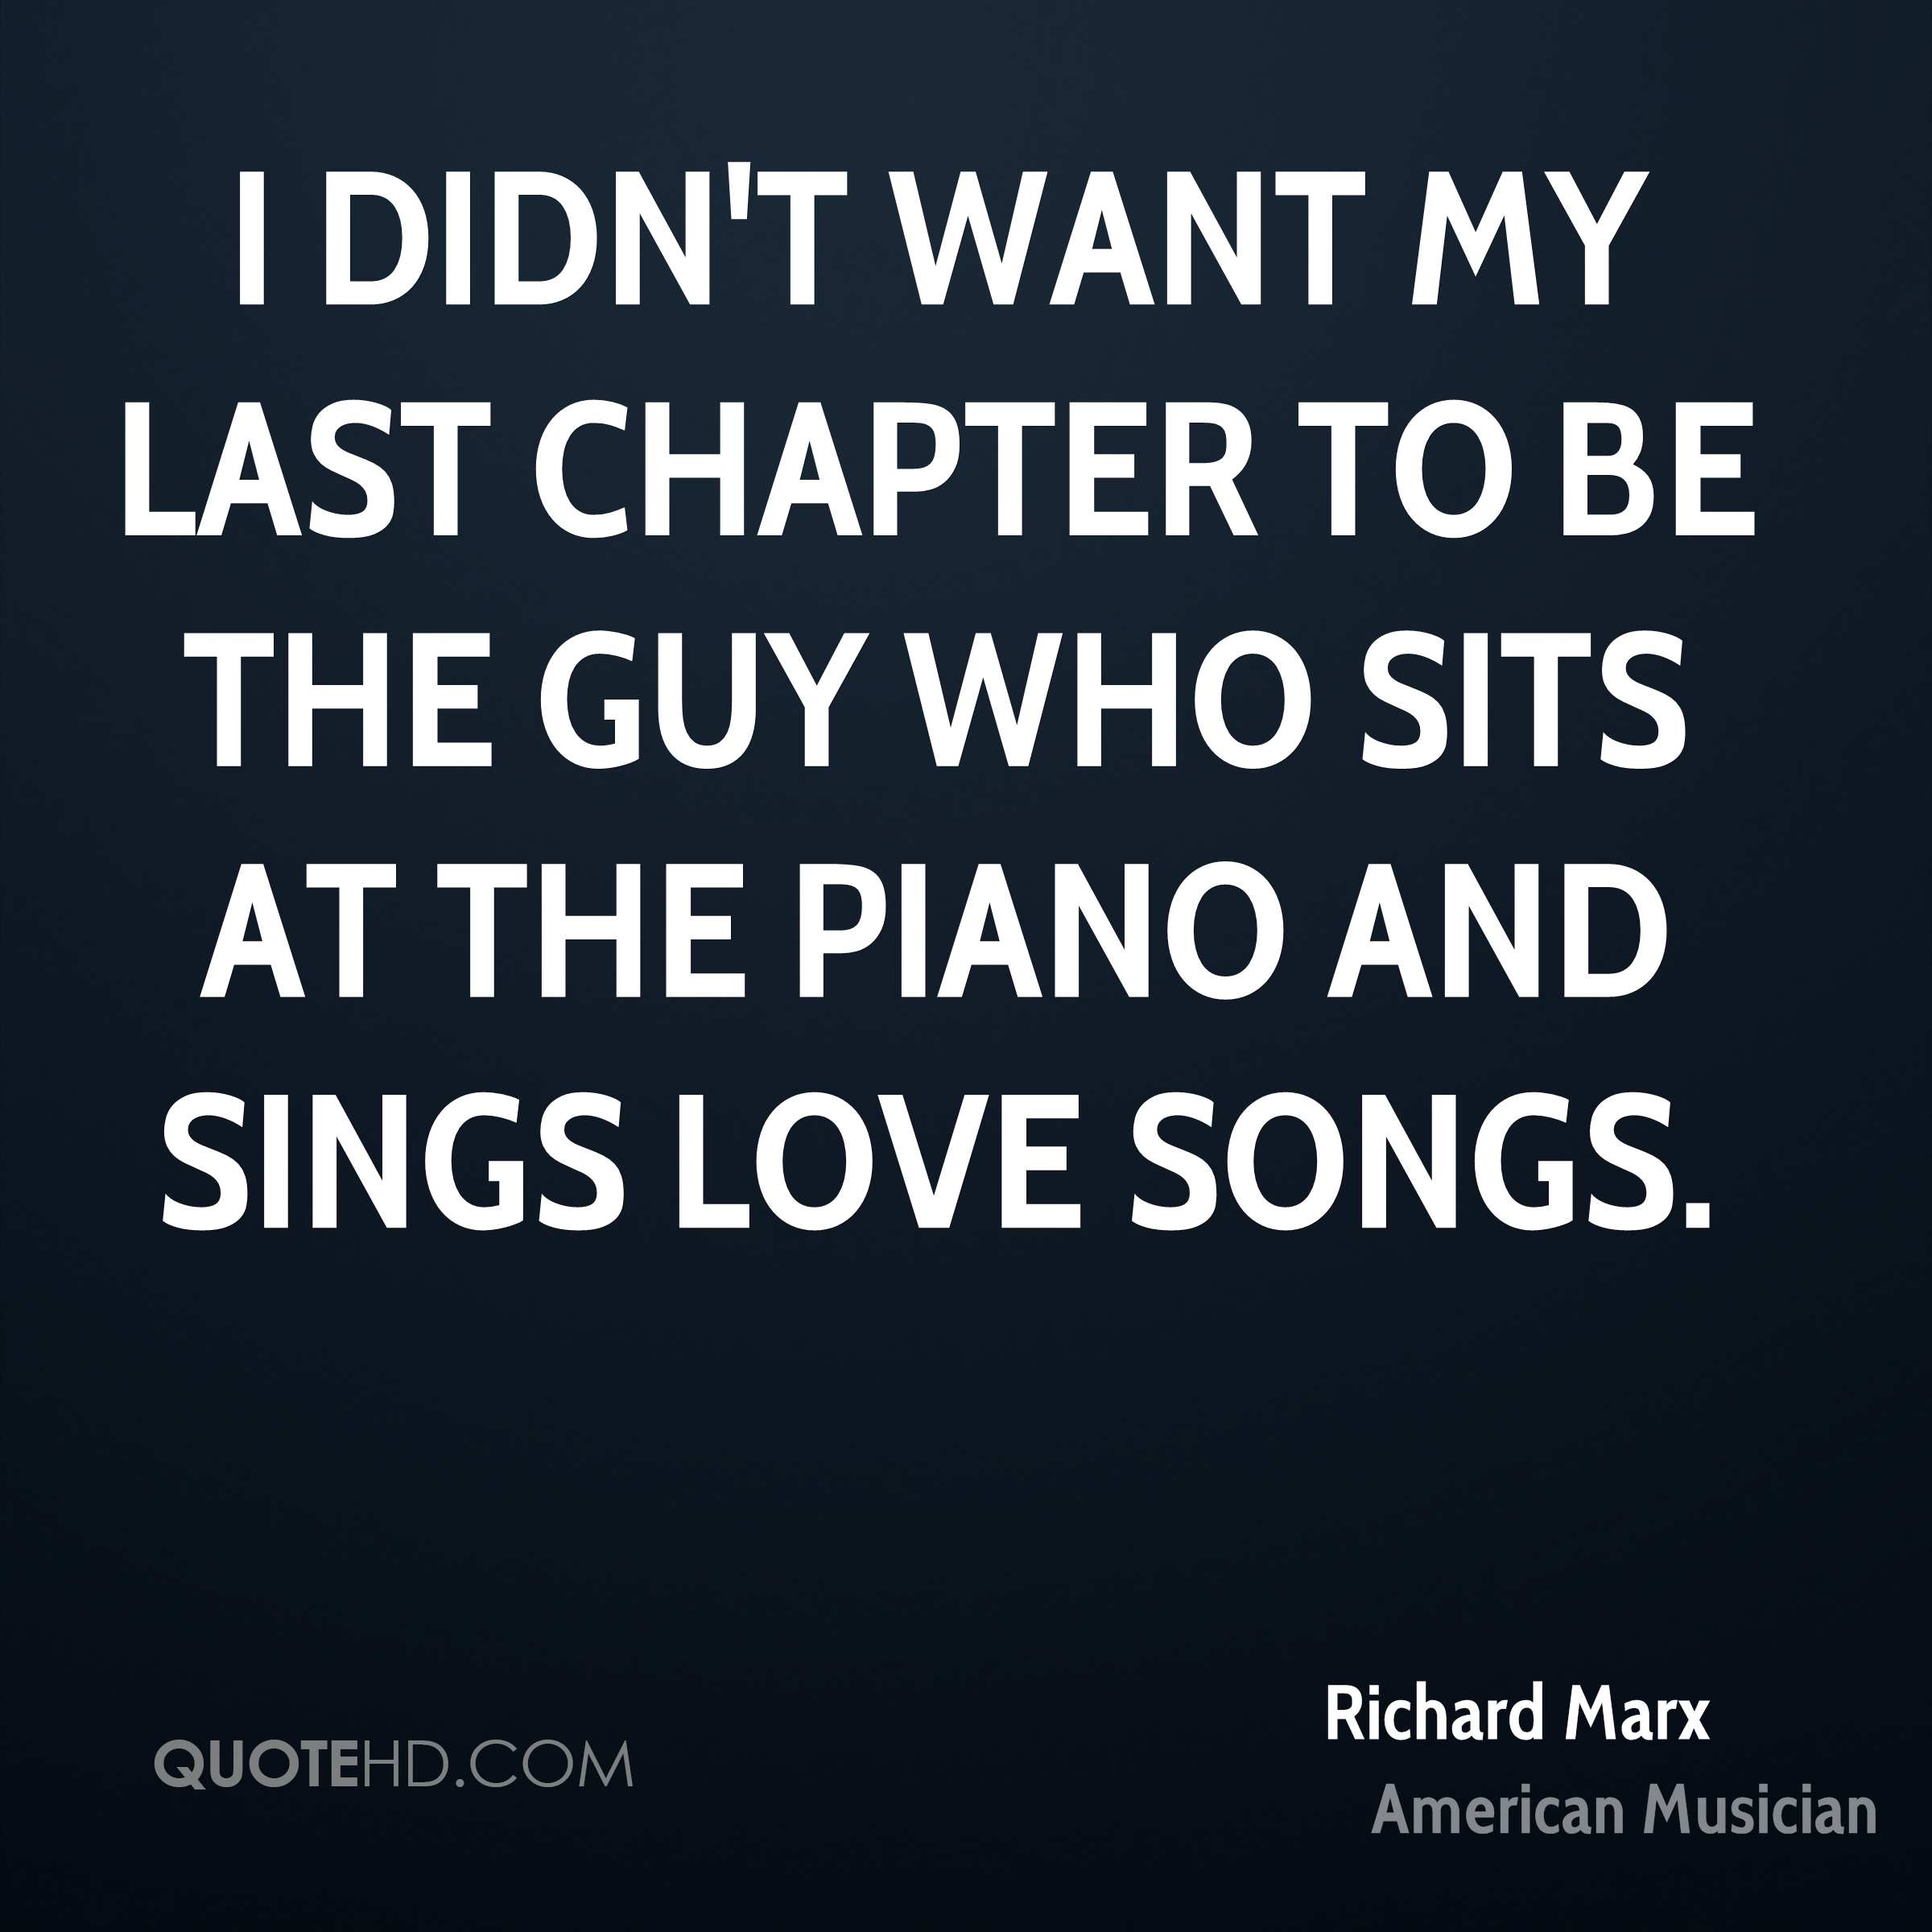 I didn't want my last chapter to be the guy who sits at the piano and sings love songs.